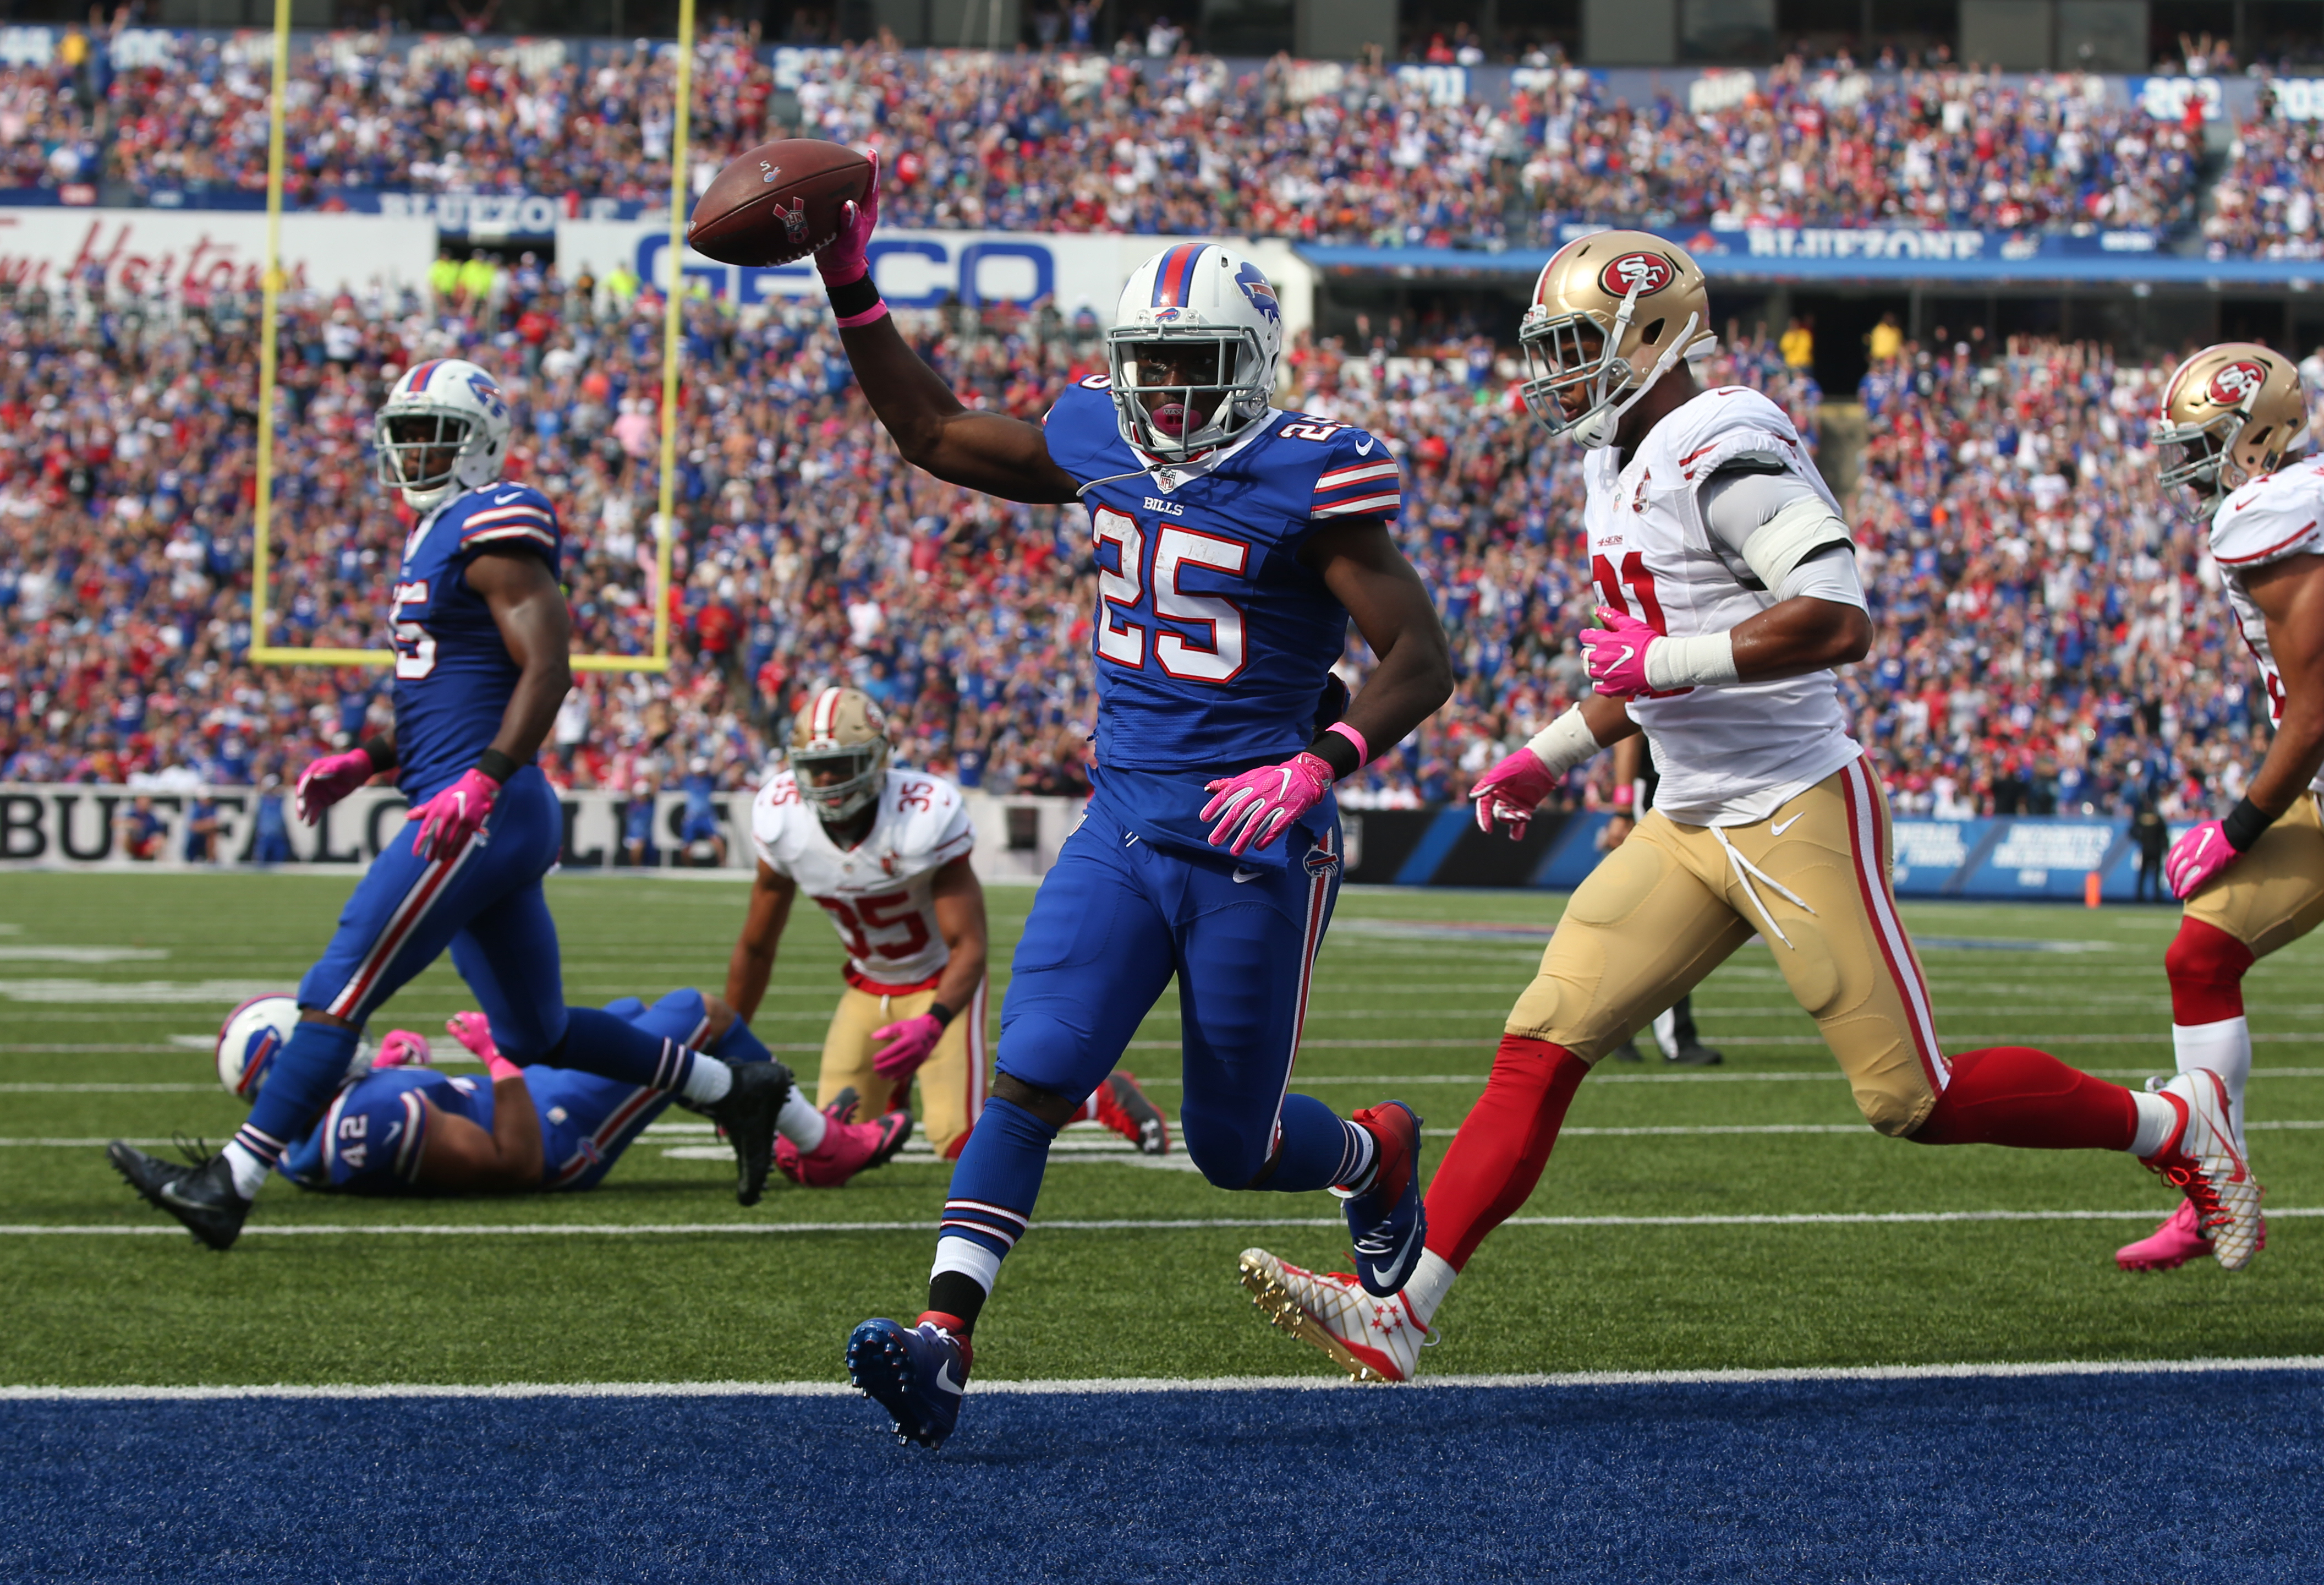 Buffalo Bills running back LeSean McCoy runs the ball into the end zone for a touchdown against the 49ers during the first quarter. (James P. McCoy/ Buffalo News)